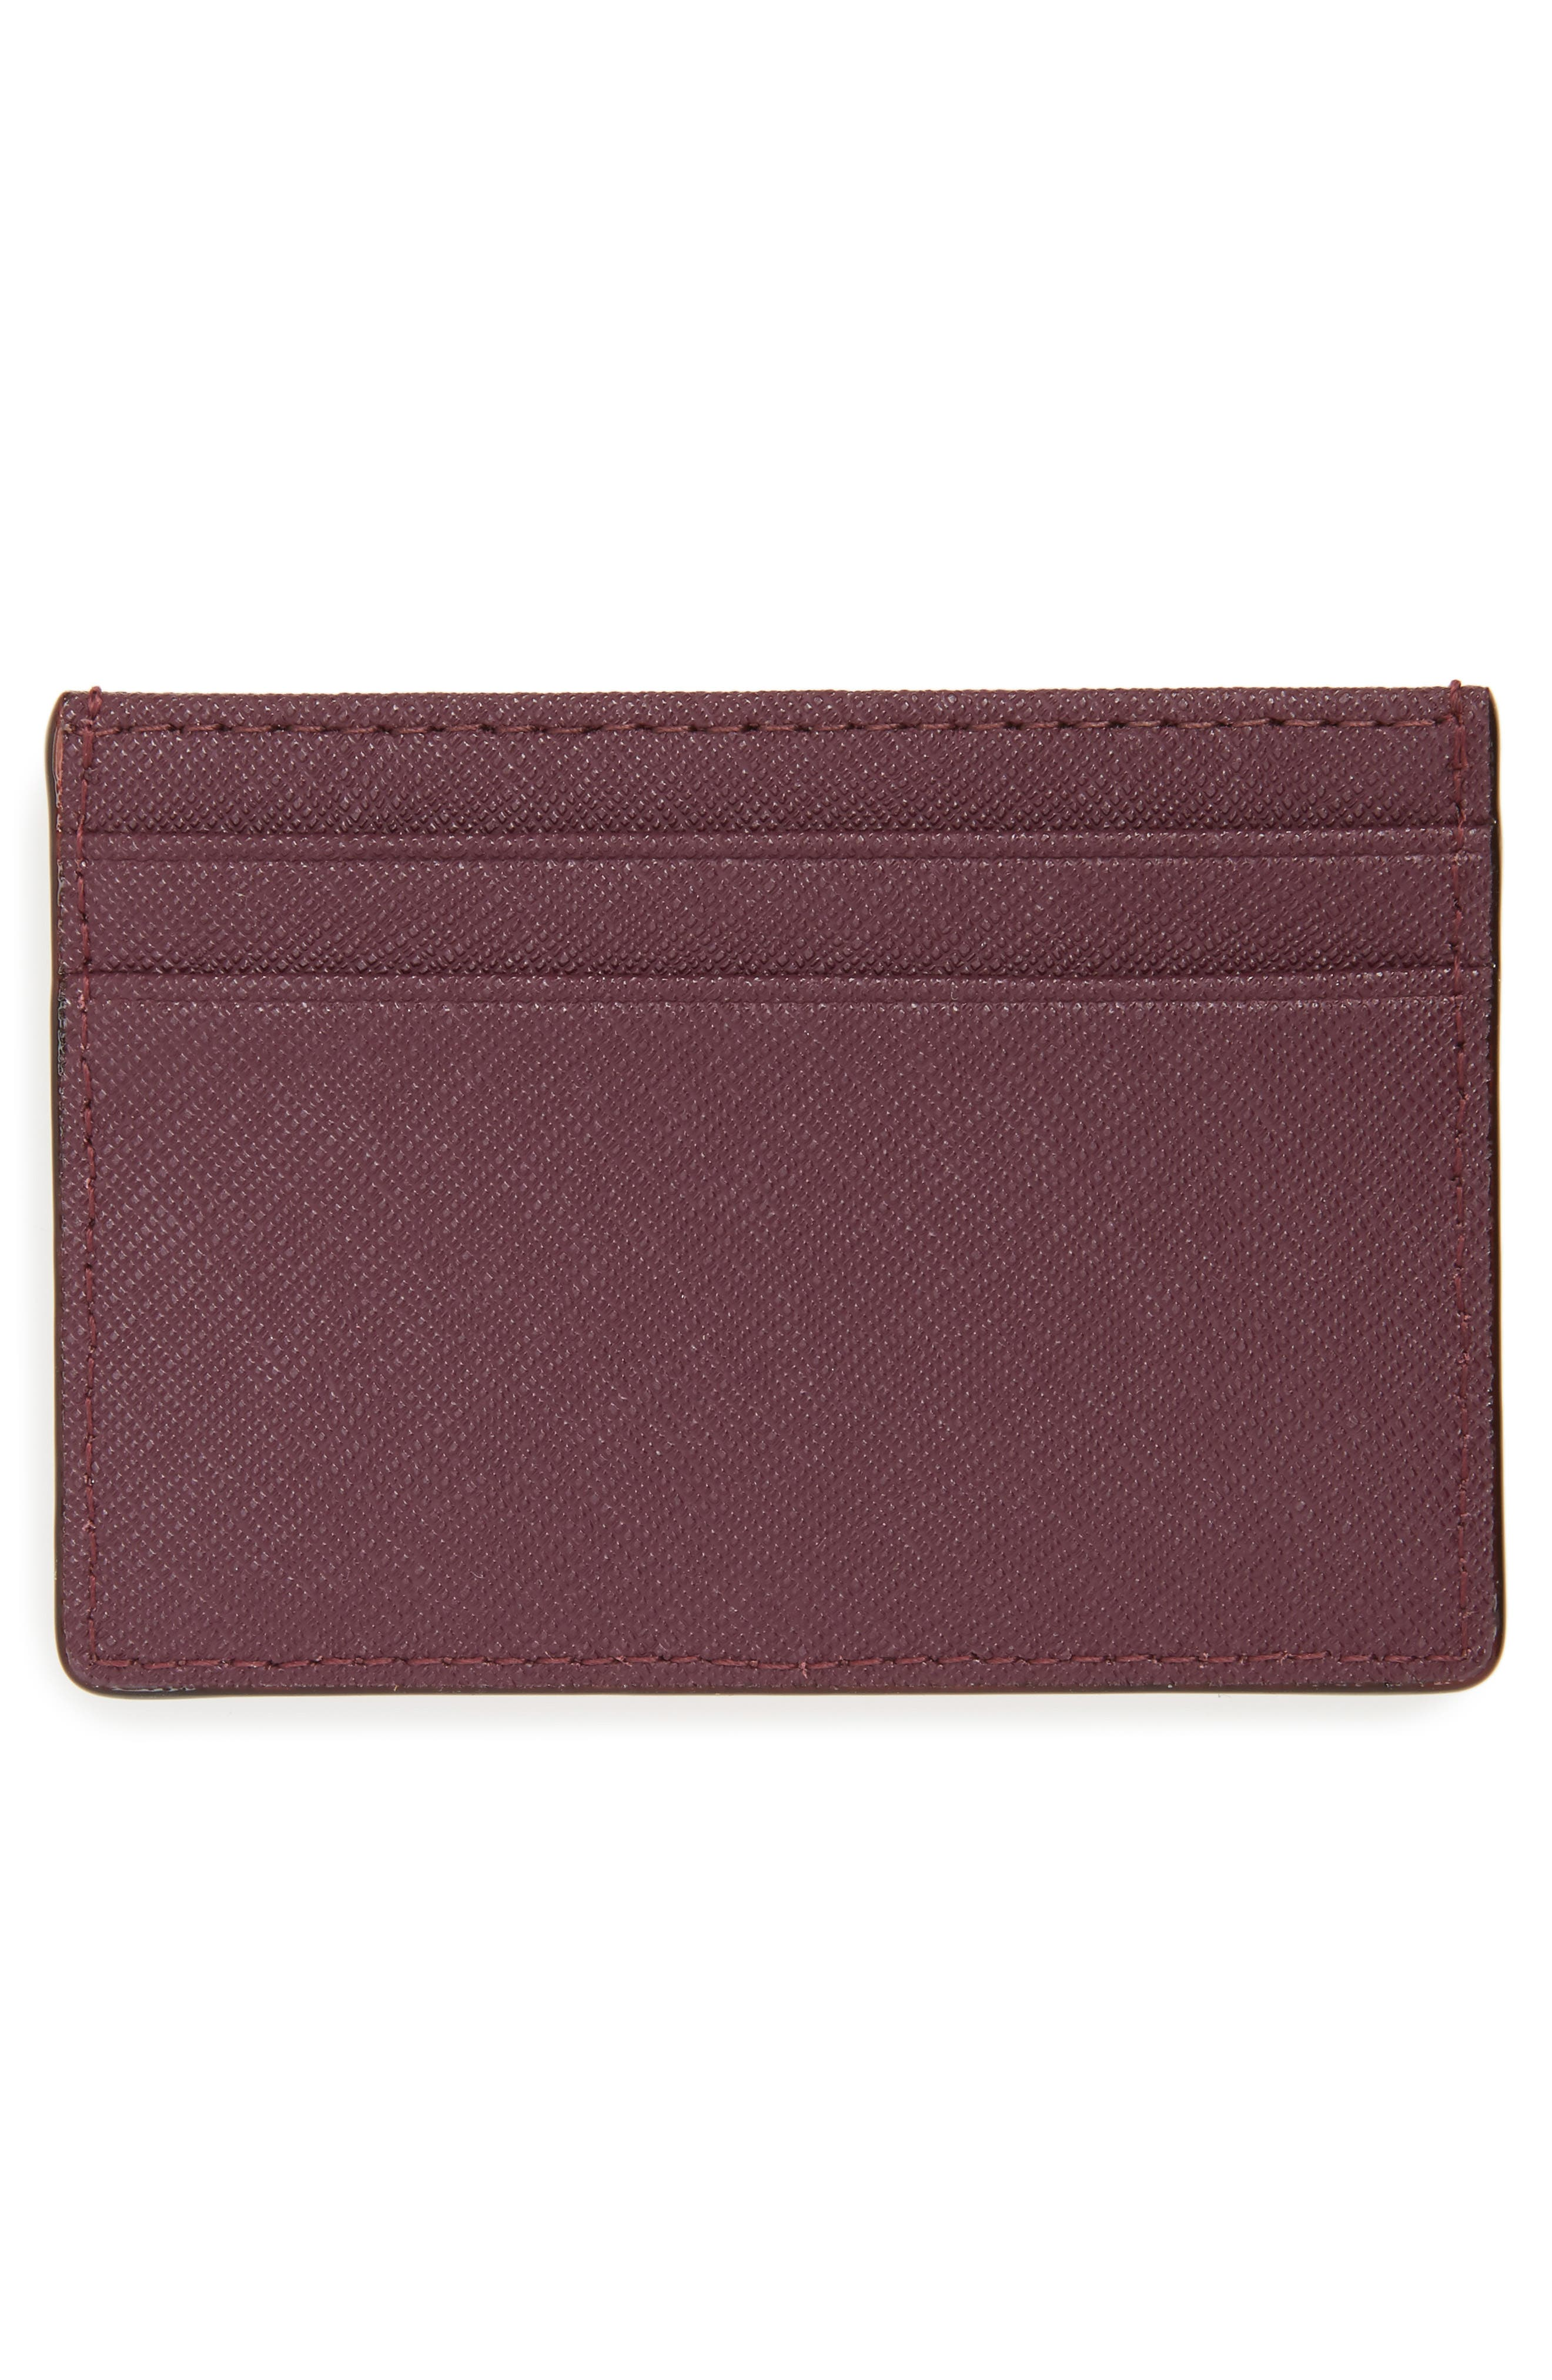 cameron street card holder,                             Alternate thumbnail 16, color,